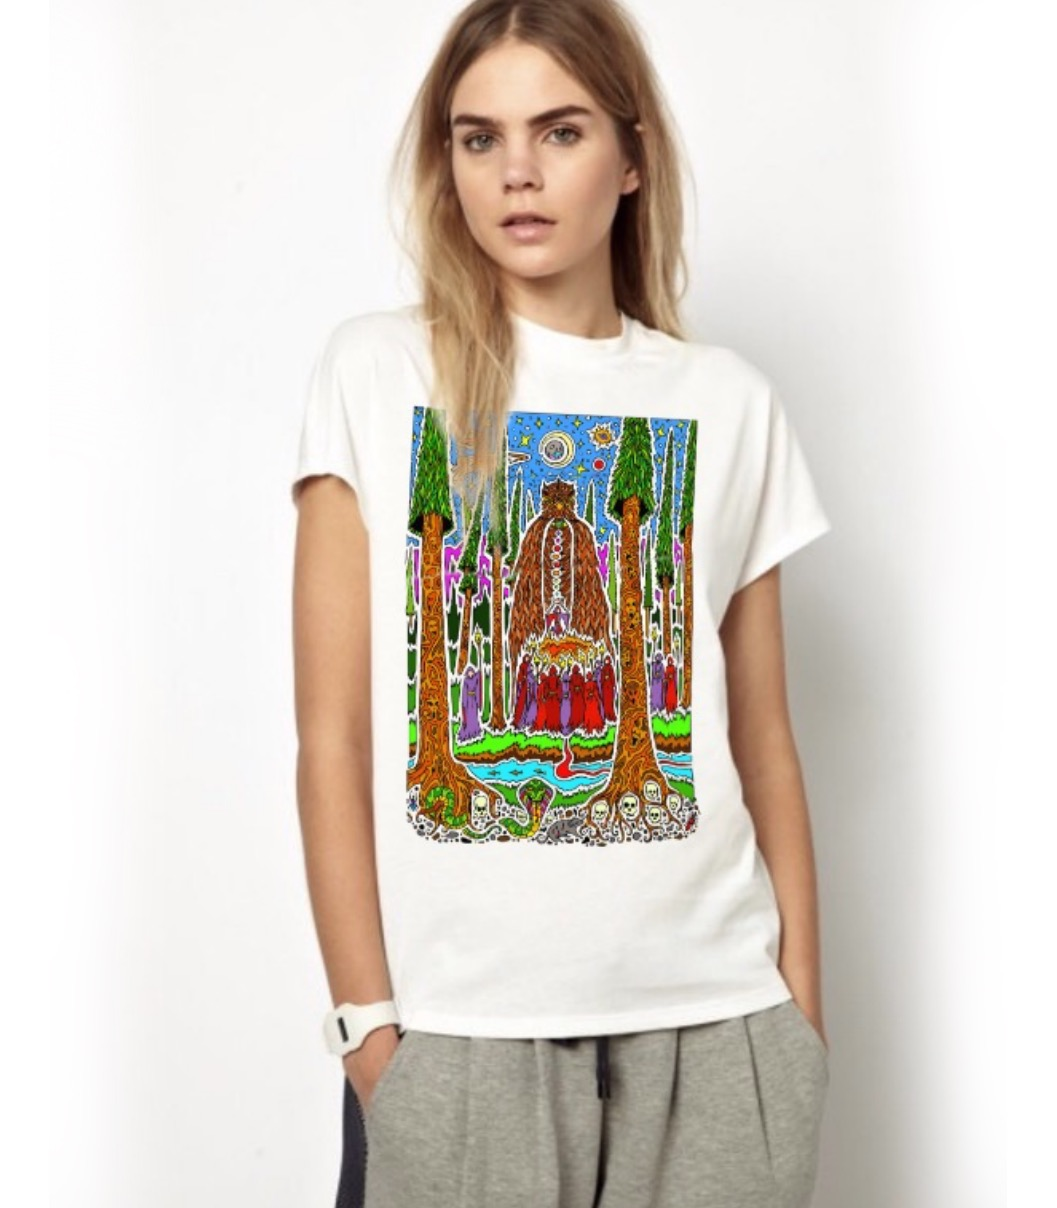 15-Off-White-Women-s-Black-Embroidered-T-Shirt-1 copy 24.jpg